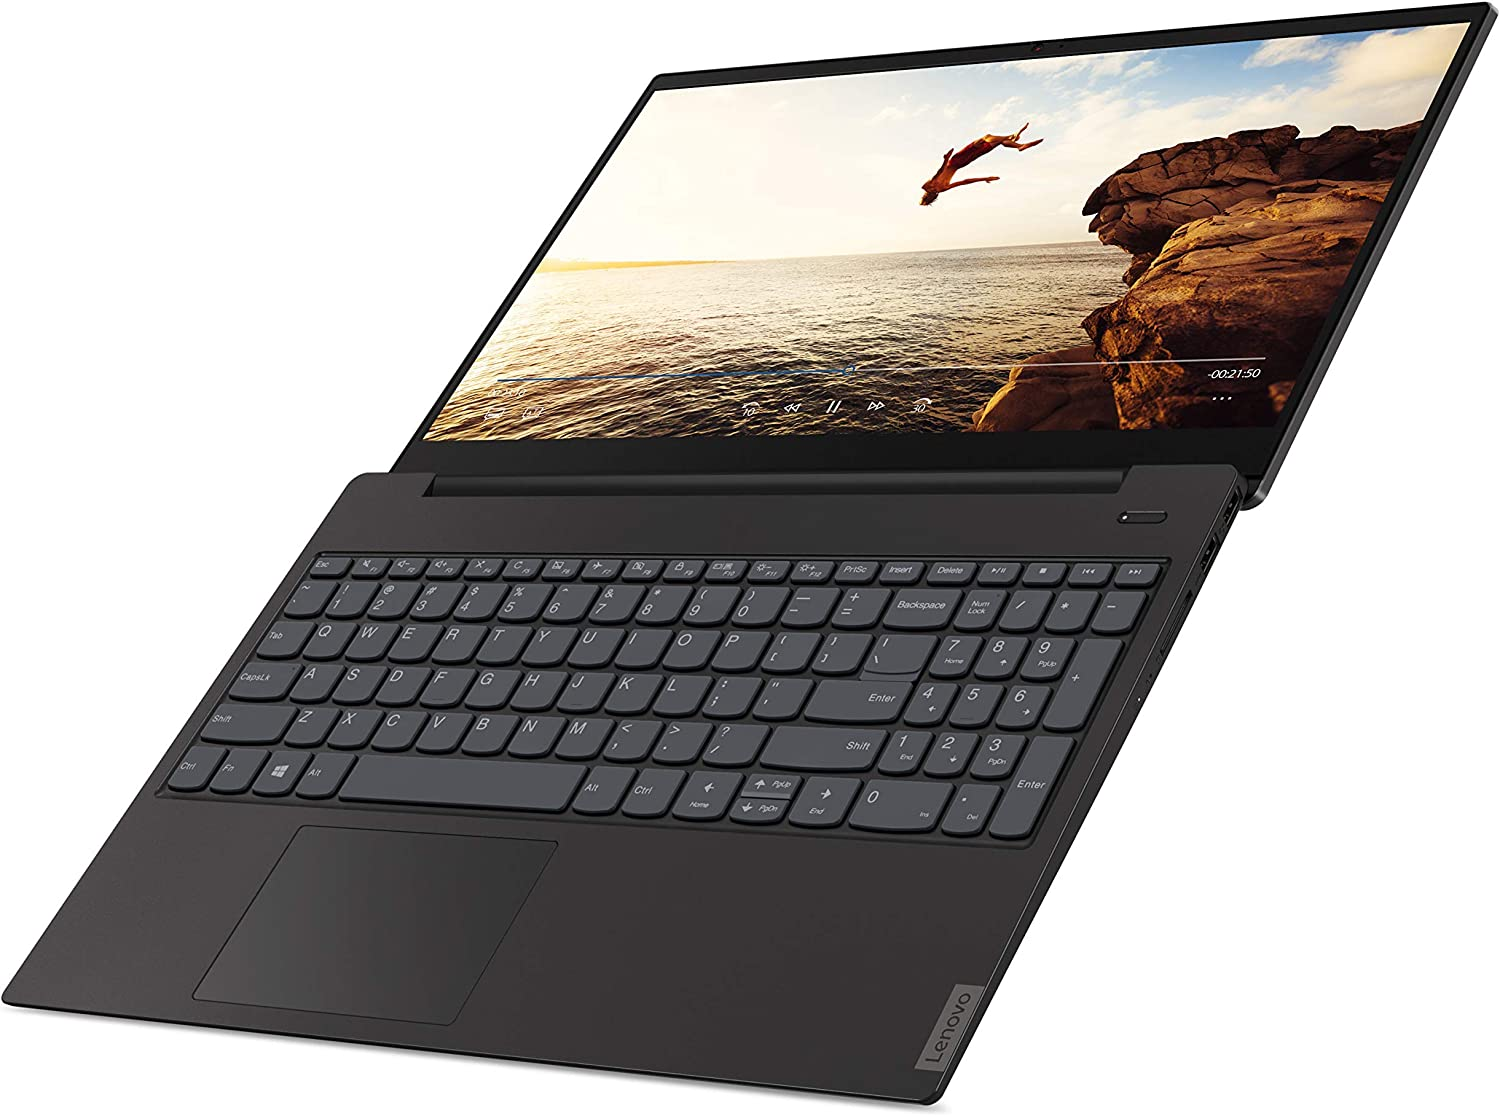 "Lenovo ideapad S340 15.6"" 8GB Memory, 256GB PCIe SSD Laptop, Intel i3 (up to 3.90GHz) Processor, UBS Type C, DDR4 RAM, 720p HD Webcam, Bluetooth 4.1, Win 10, Black (Renewed)"